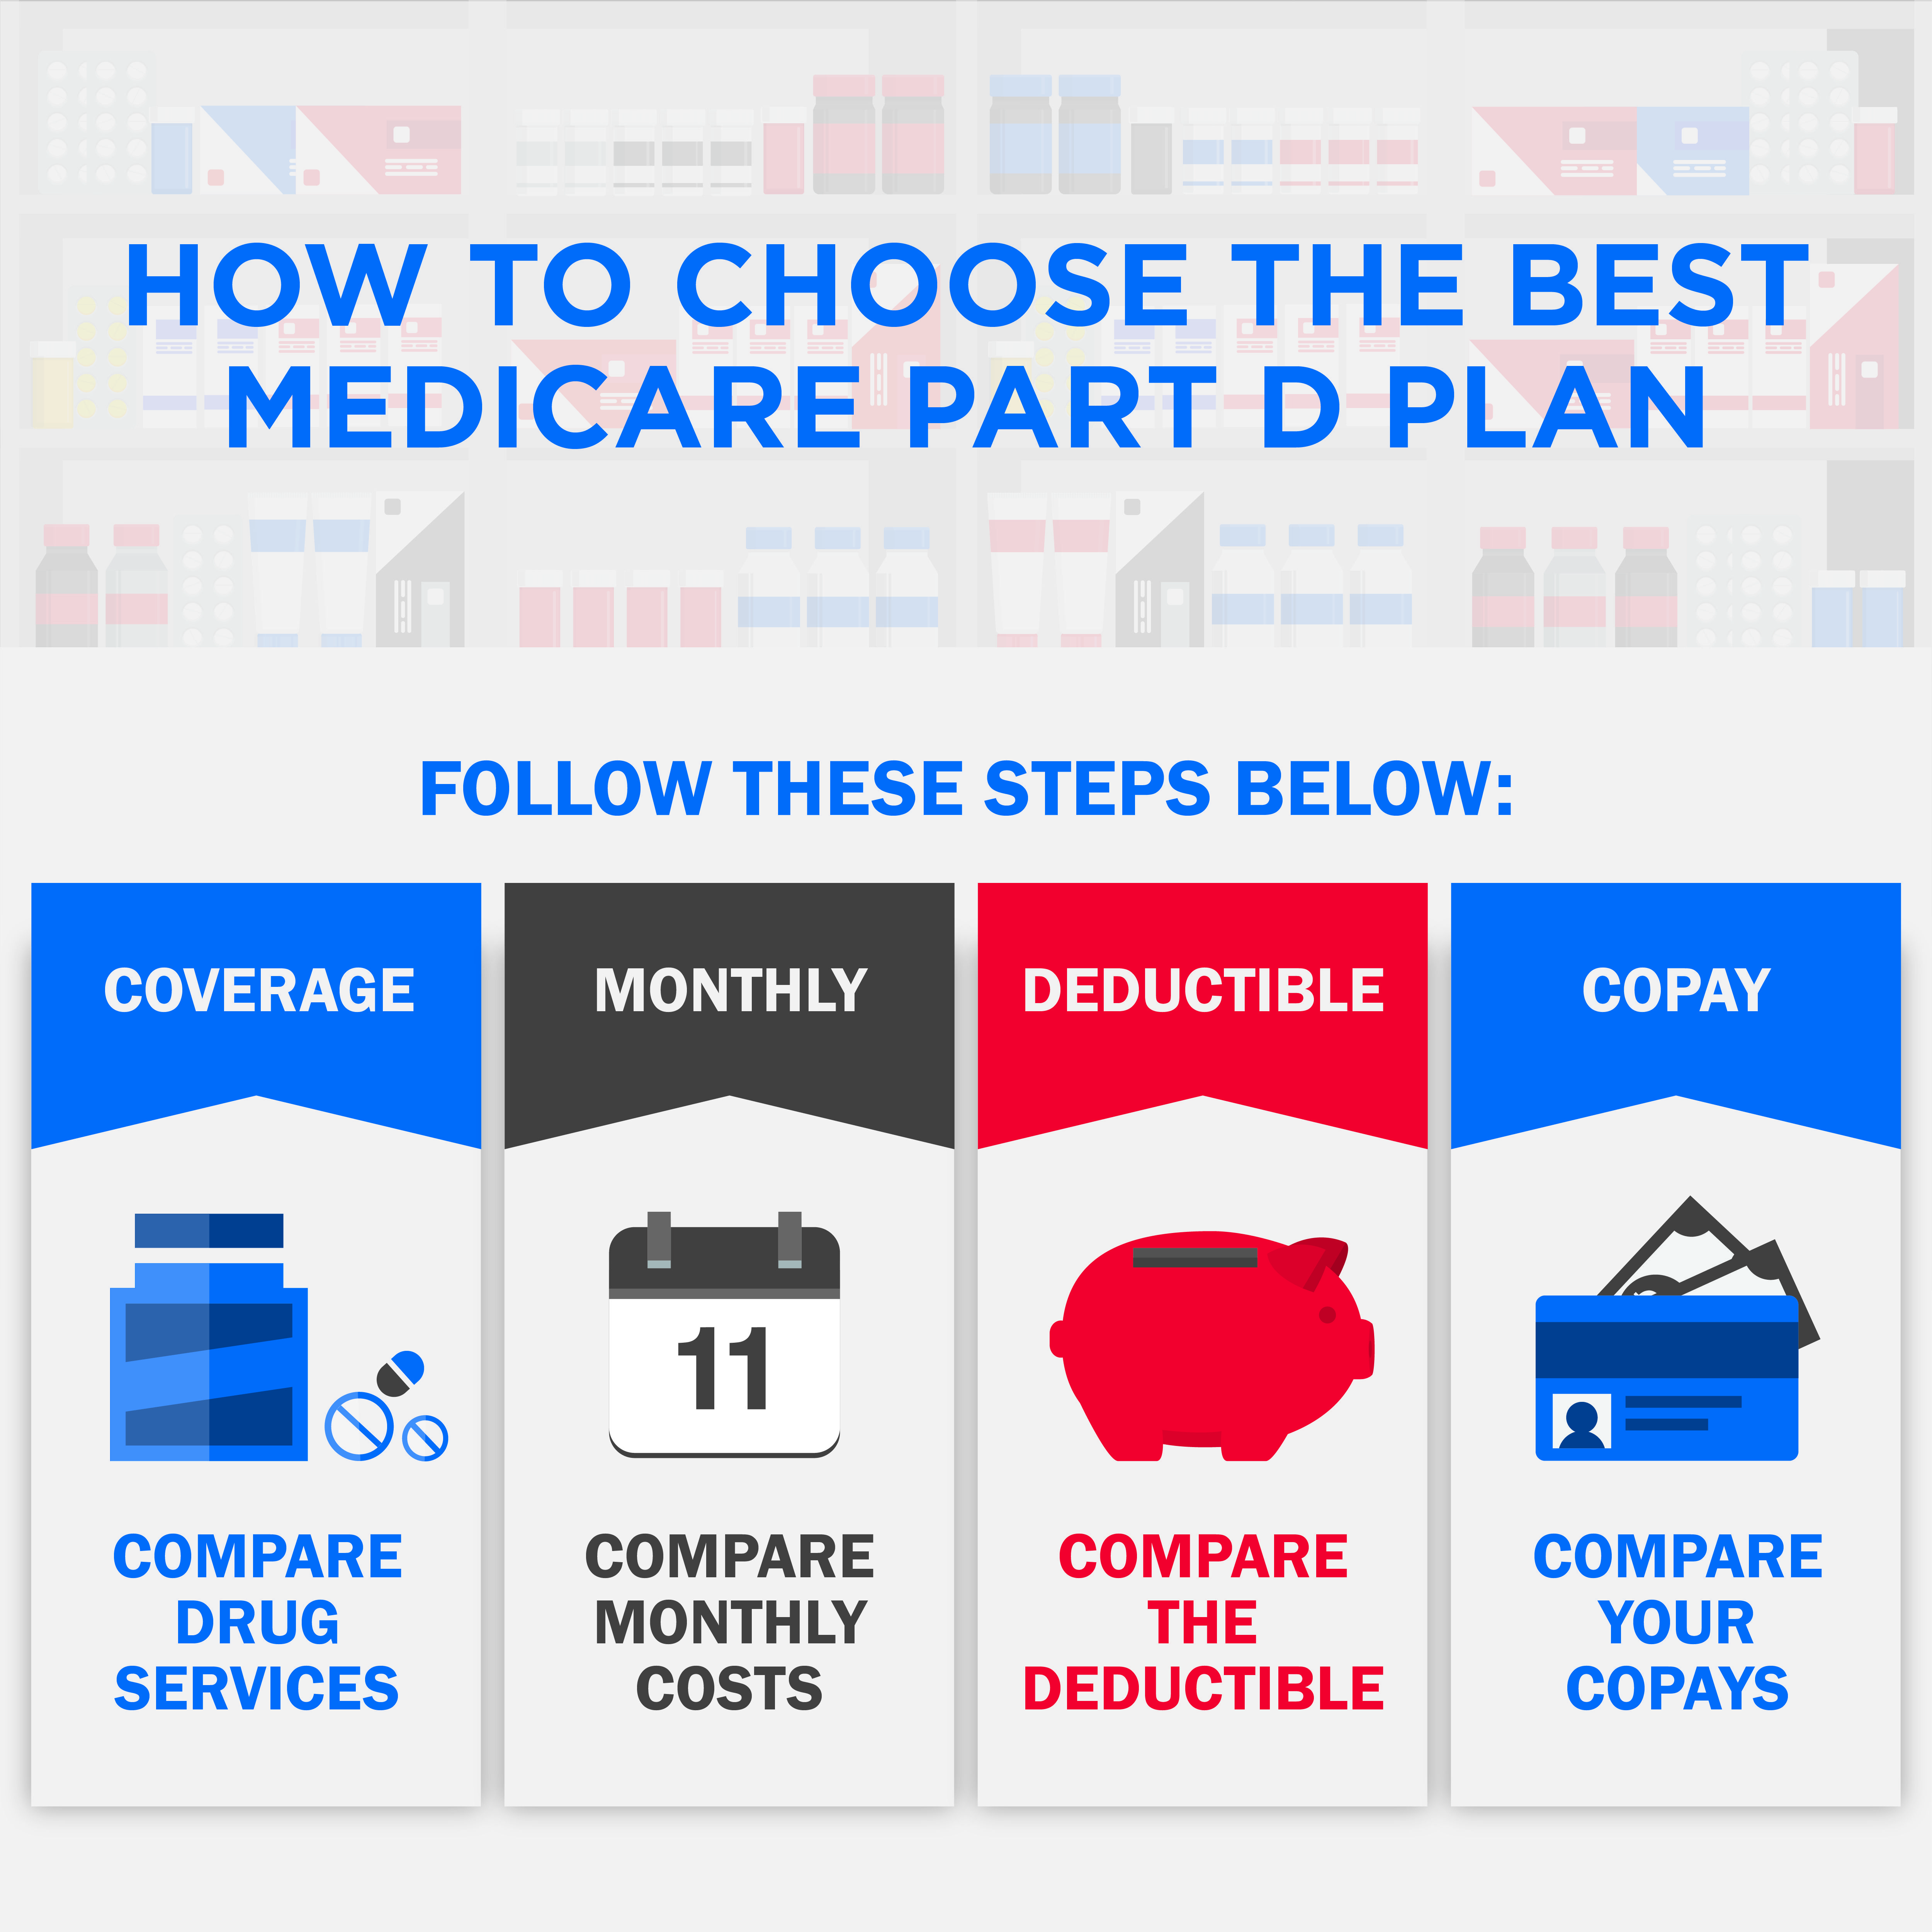 It S That Time Of Year Again Medicare Part D Open Enrollment Dates Are Oct 15 Dec 7 Get All The Details Here Medicare How To Stay Healthy Healthy Aging